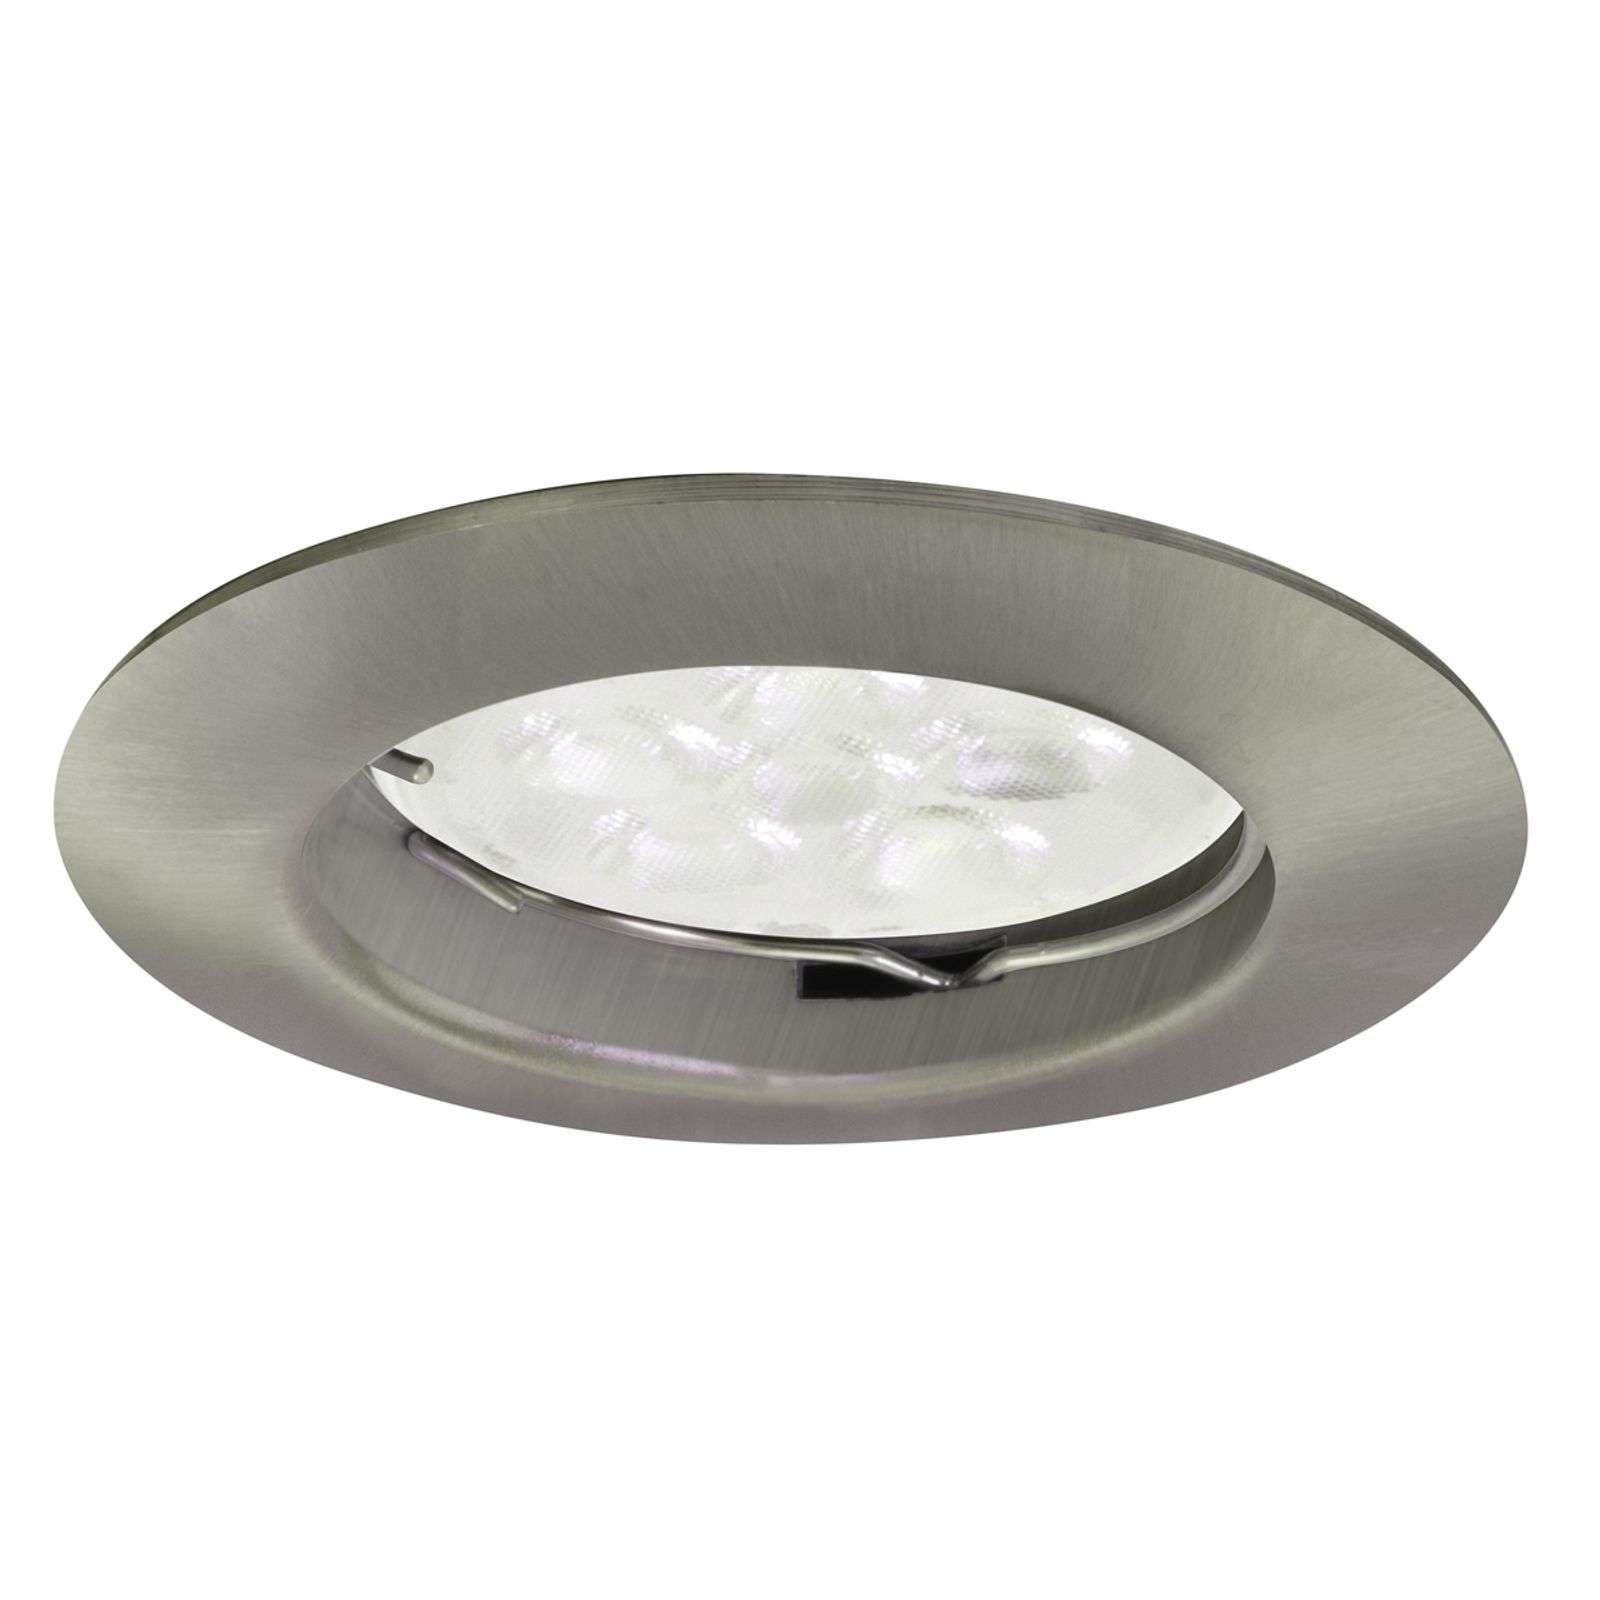 Spot LED Downlight DIM blanc, nickel